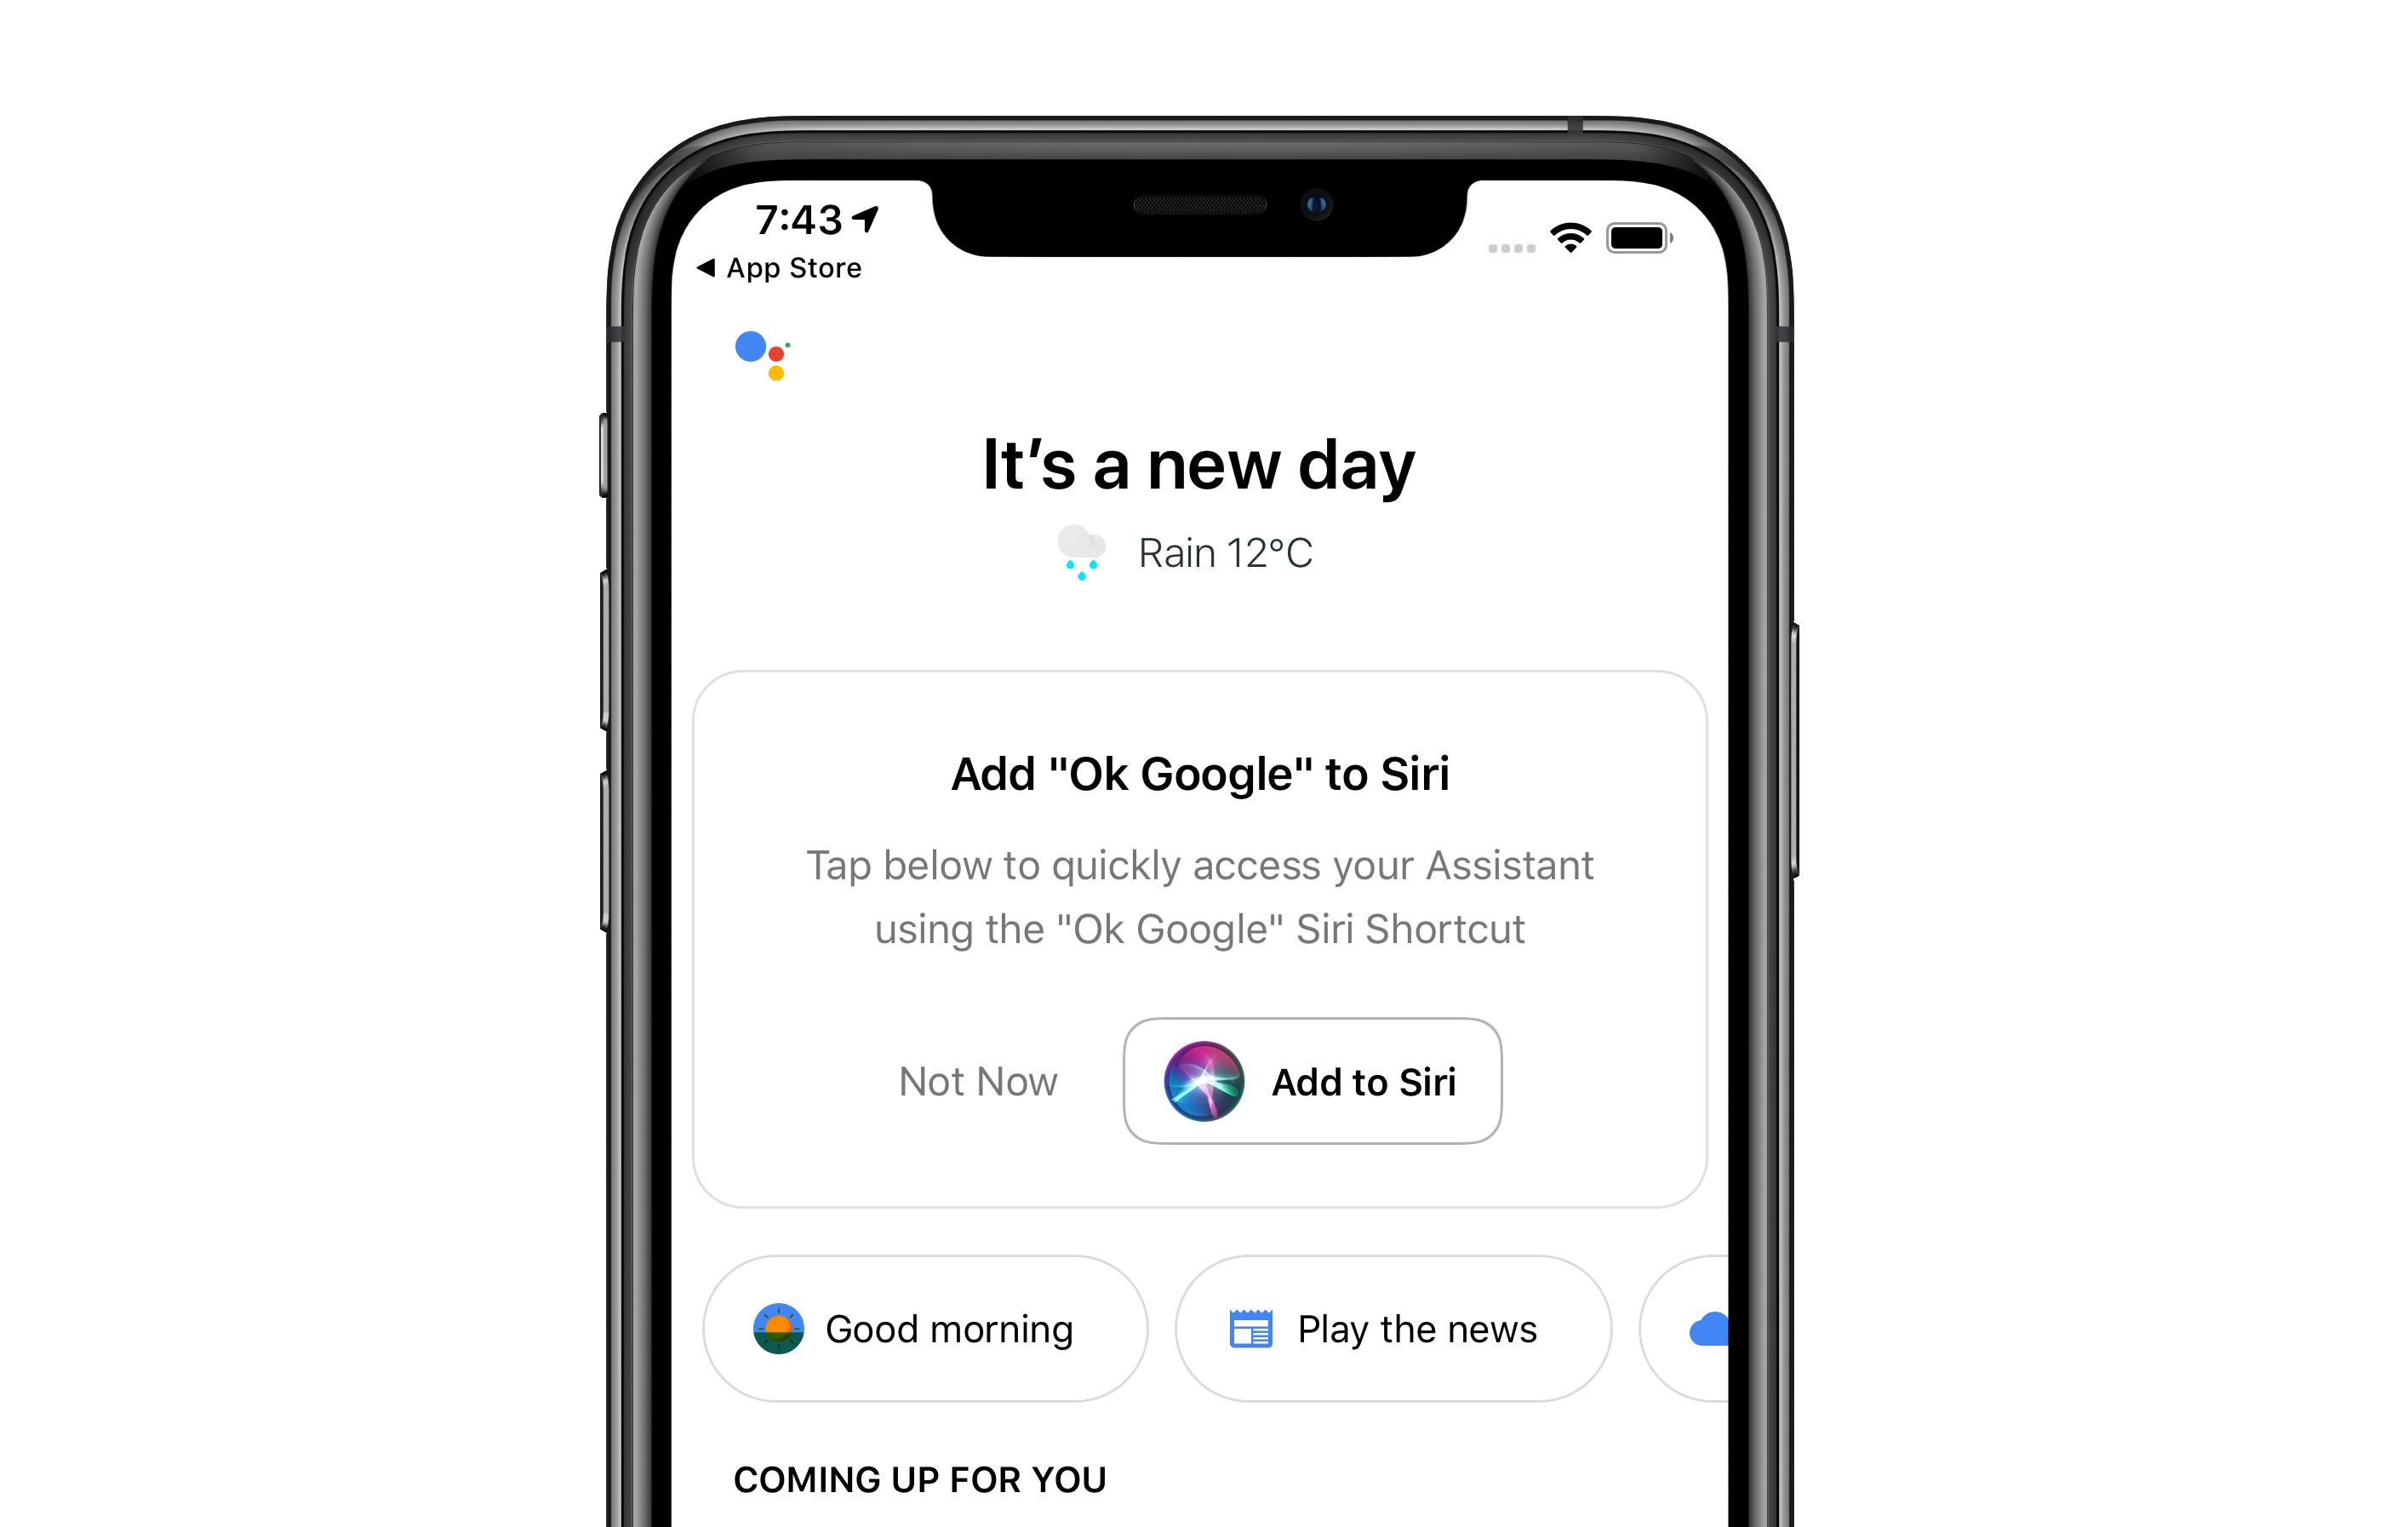 Now Siri will let you speak to the Google Assistant